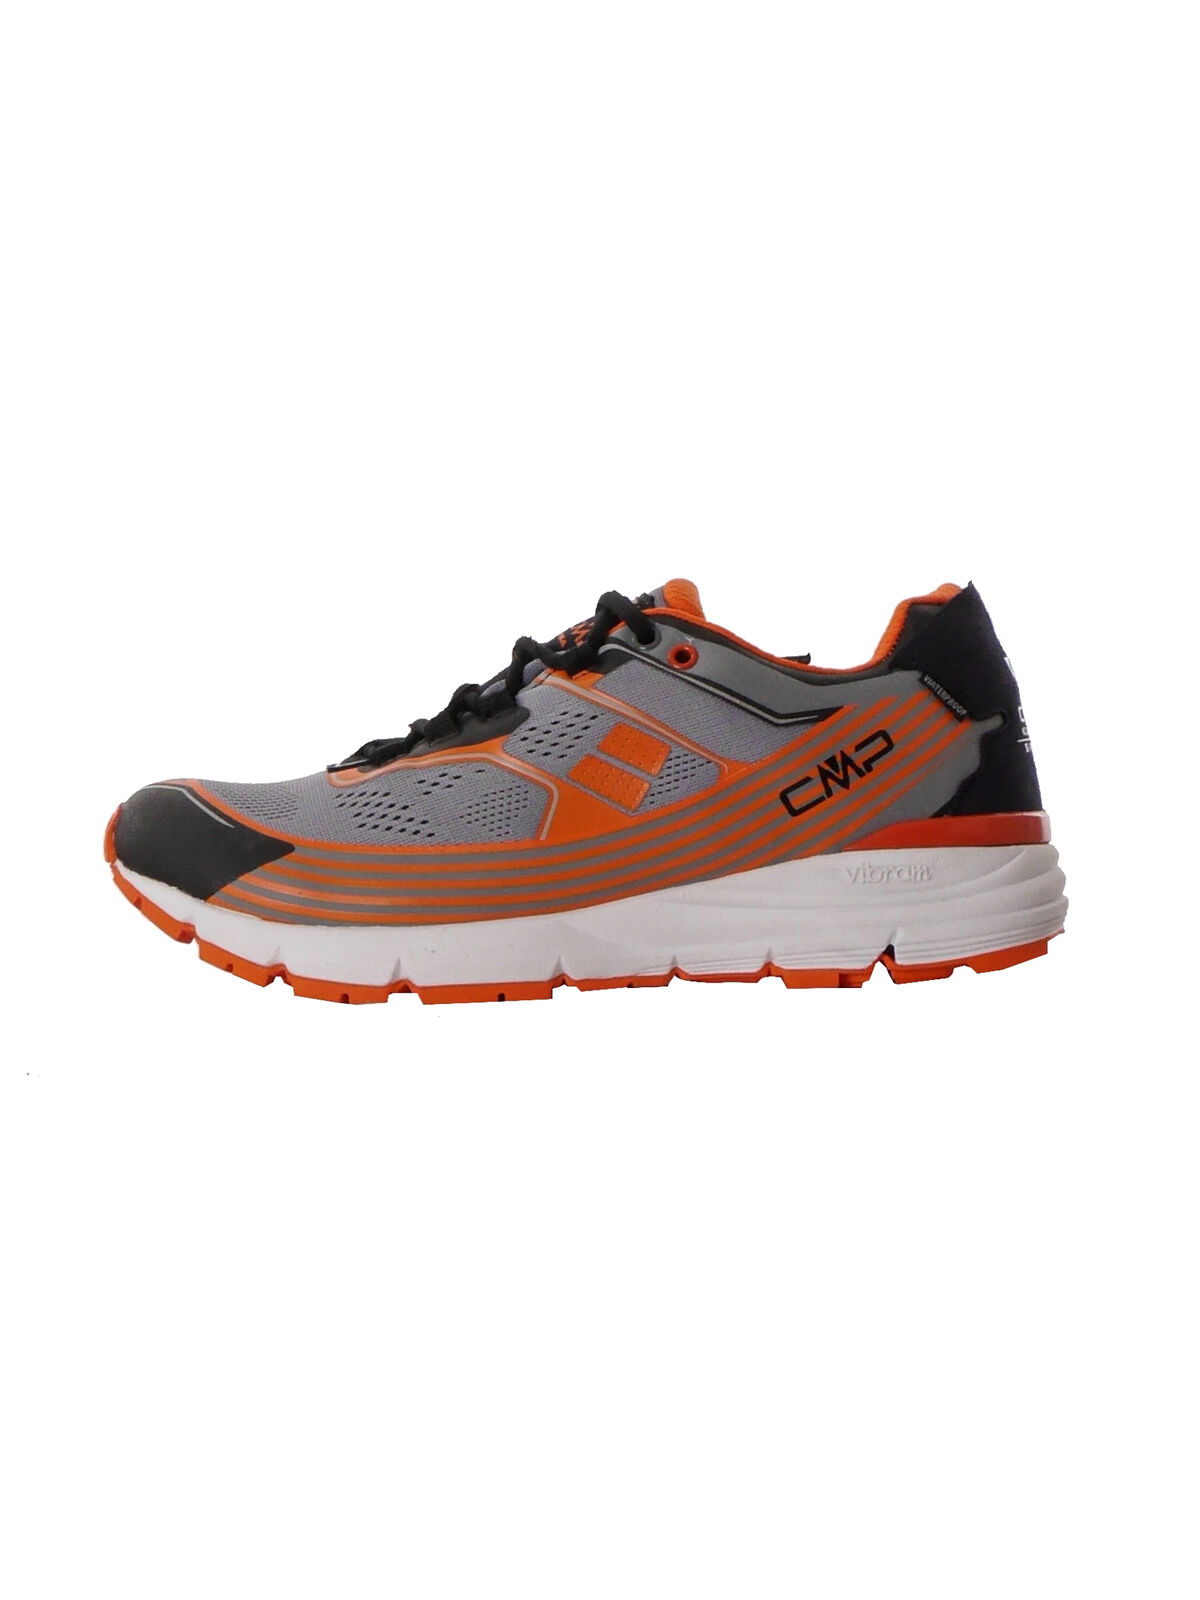 CMP shoes da Corsa Sport Kursa Trail shoes  Wp grey Impermeabile Misto  great offers